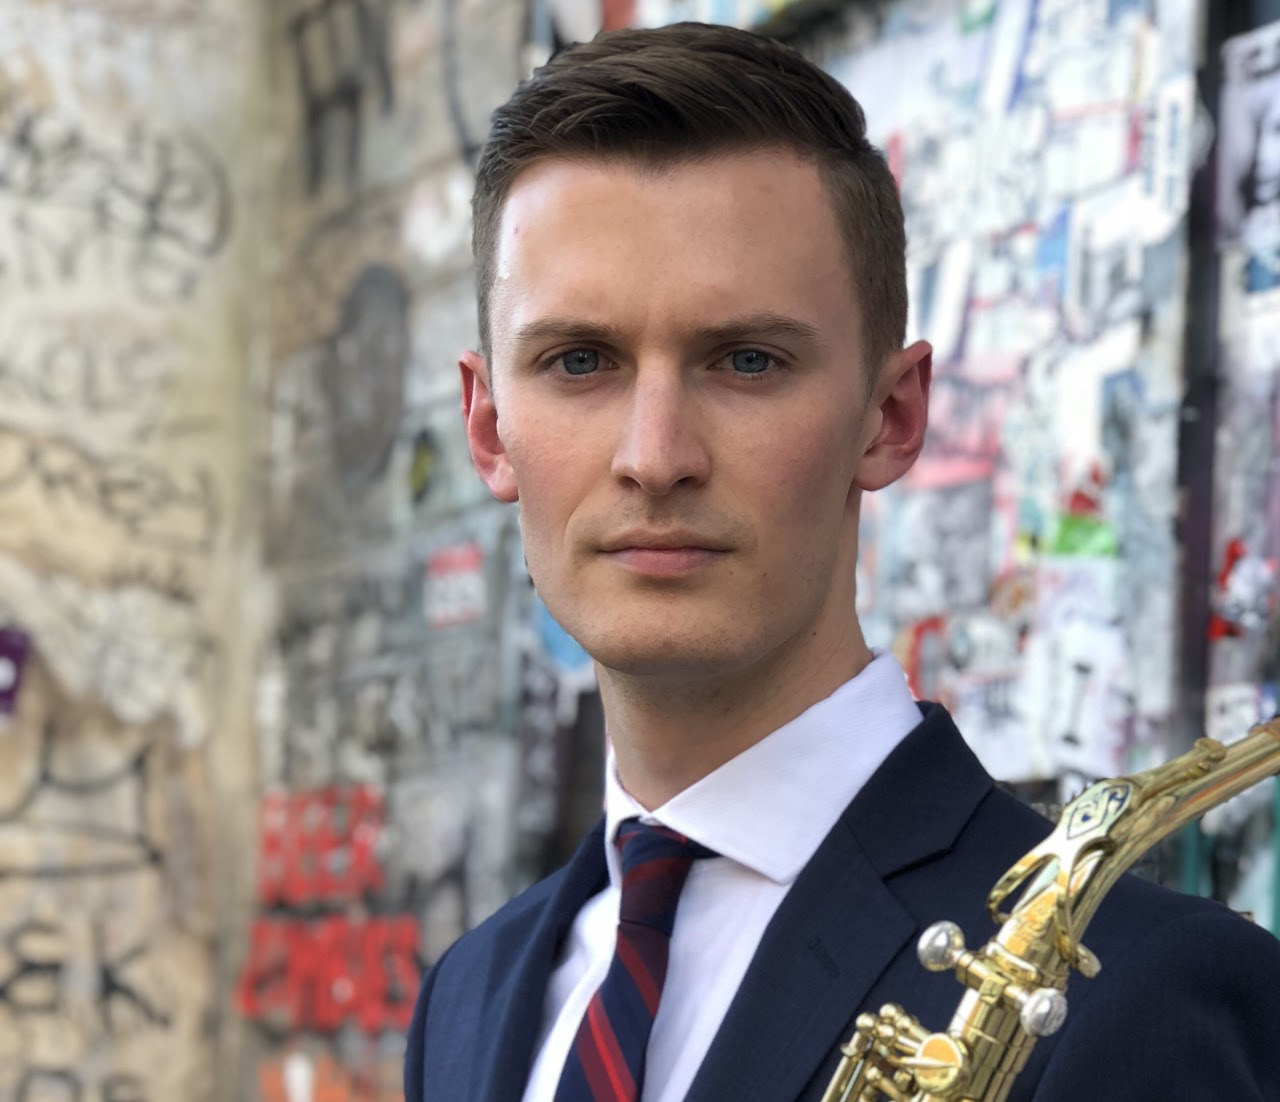 John Seaton is a saxophone teacher in Las Vegas who uses Key Leaves saxophone care products to stop sticky G# and he recommends them to his students.